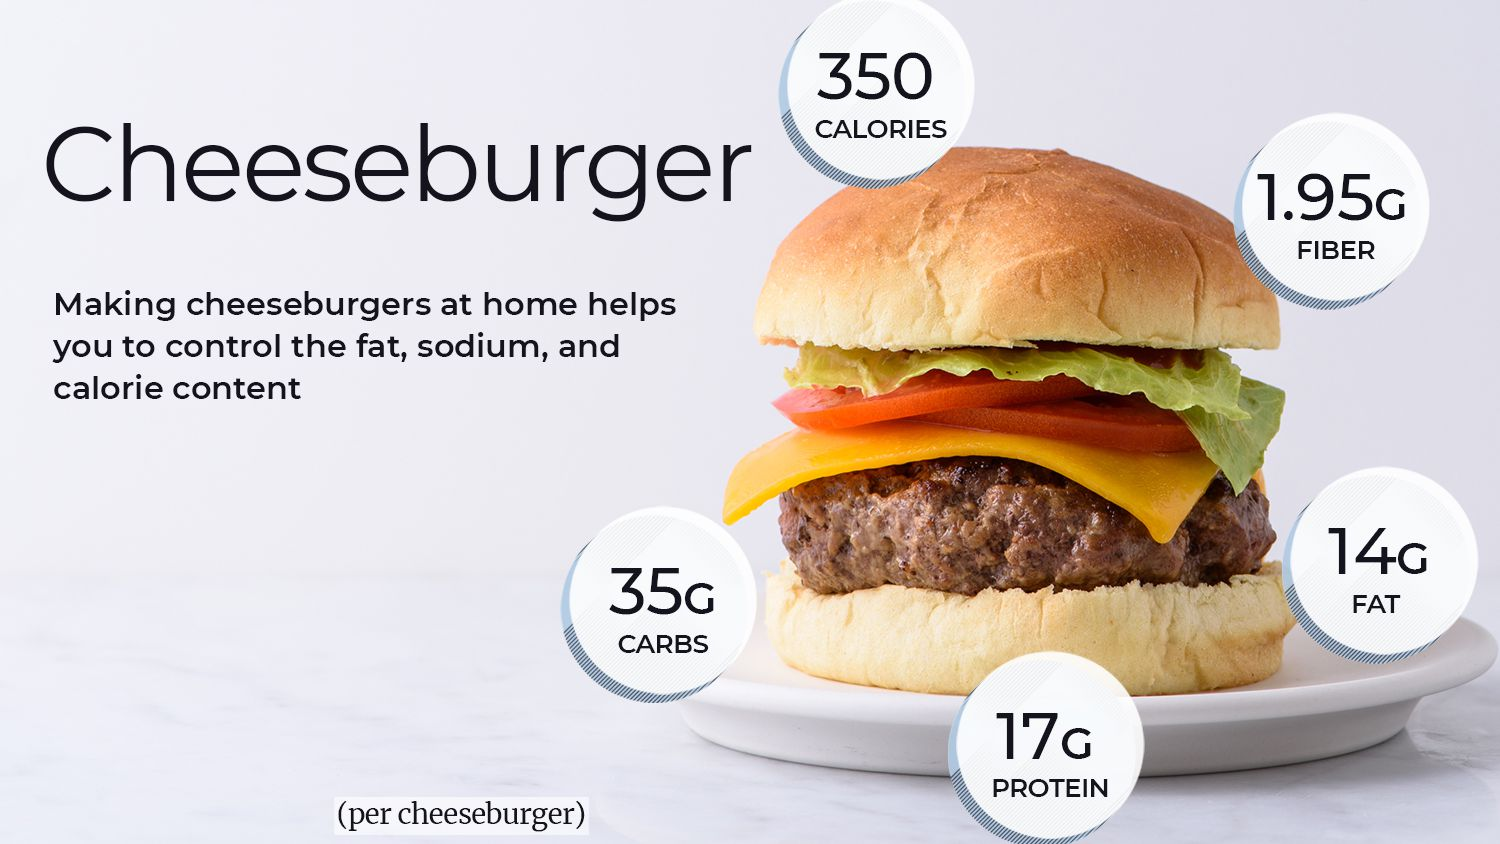 Cheeseburger Nutrition Calories And Health Benefits